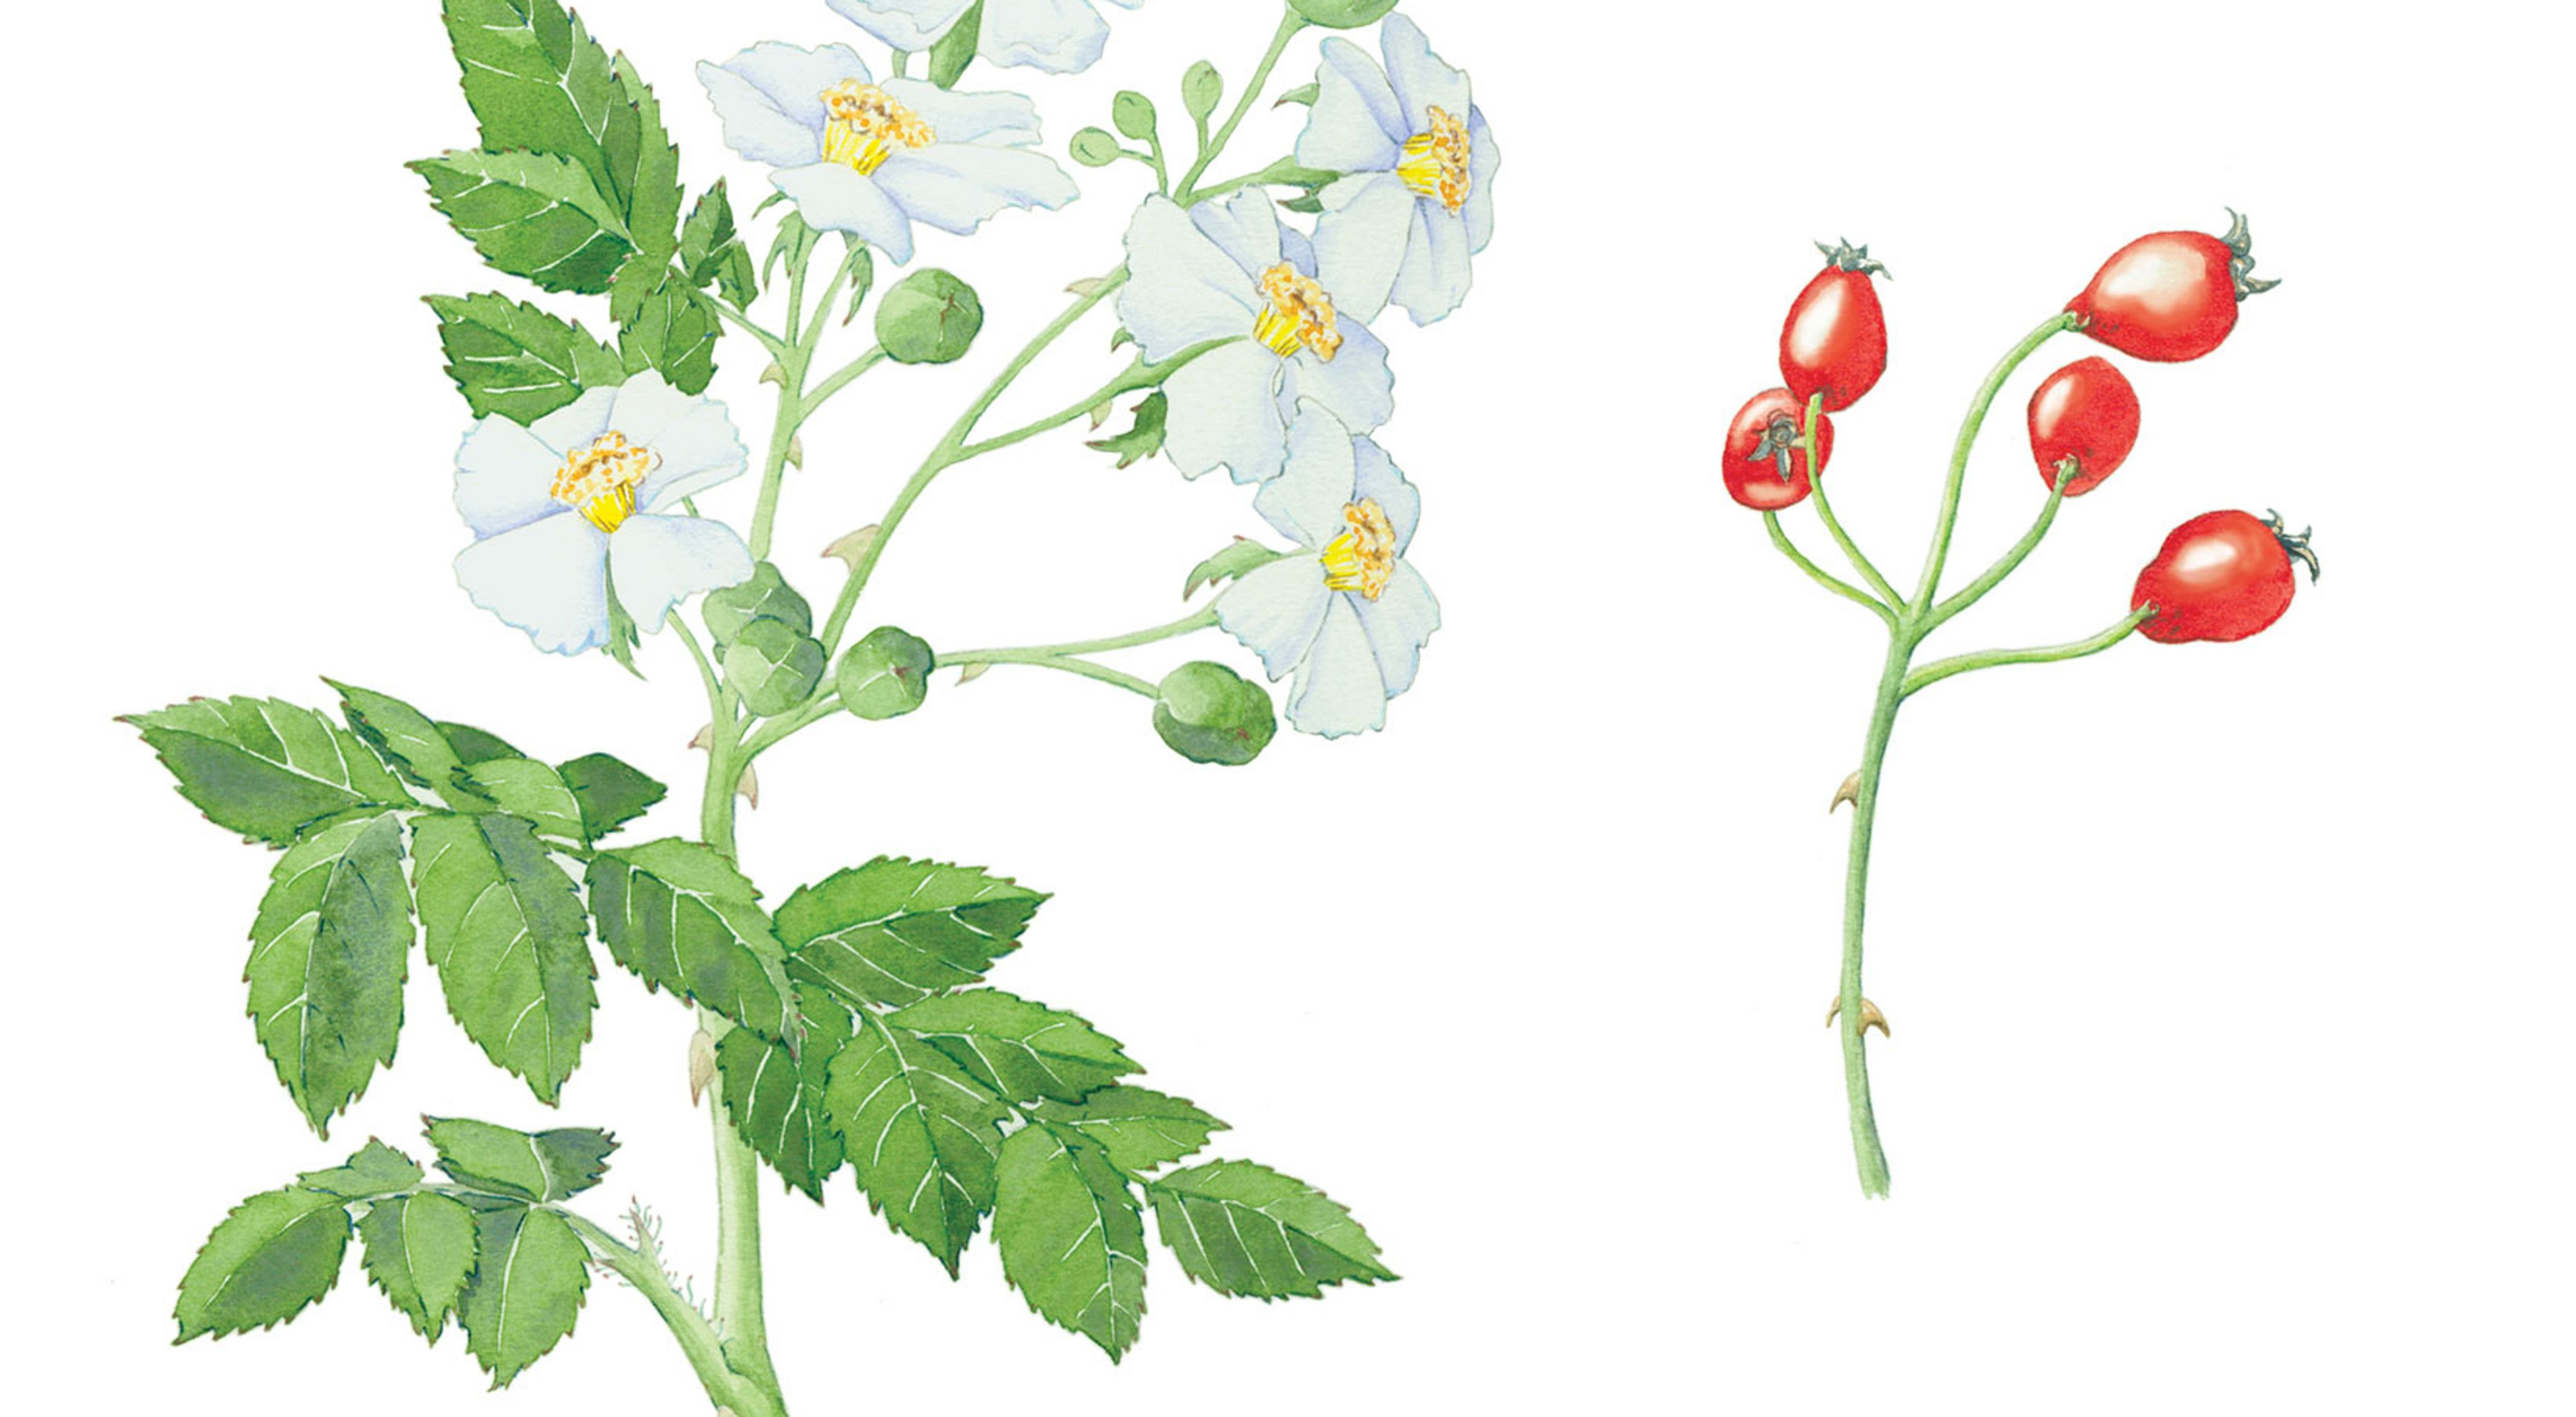 An illustration of a plant with small white flowers with a yellow center and pointed leaves. A second illustration shows the plant's red berries.